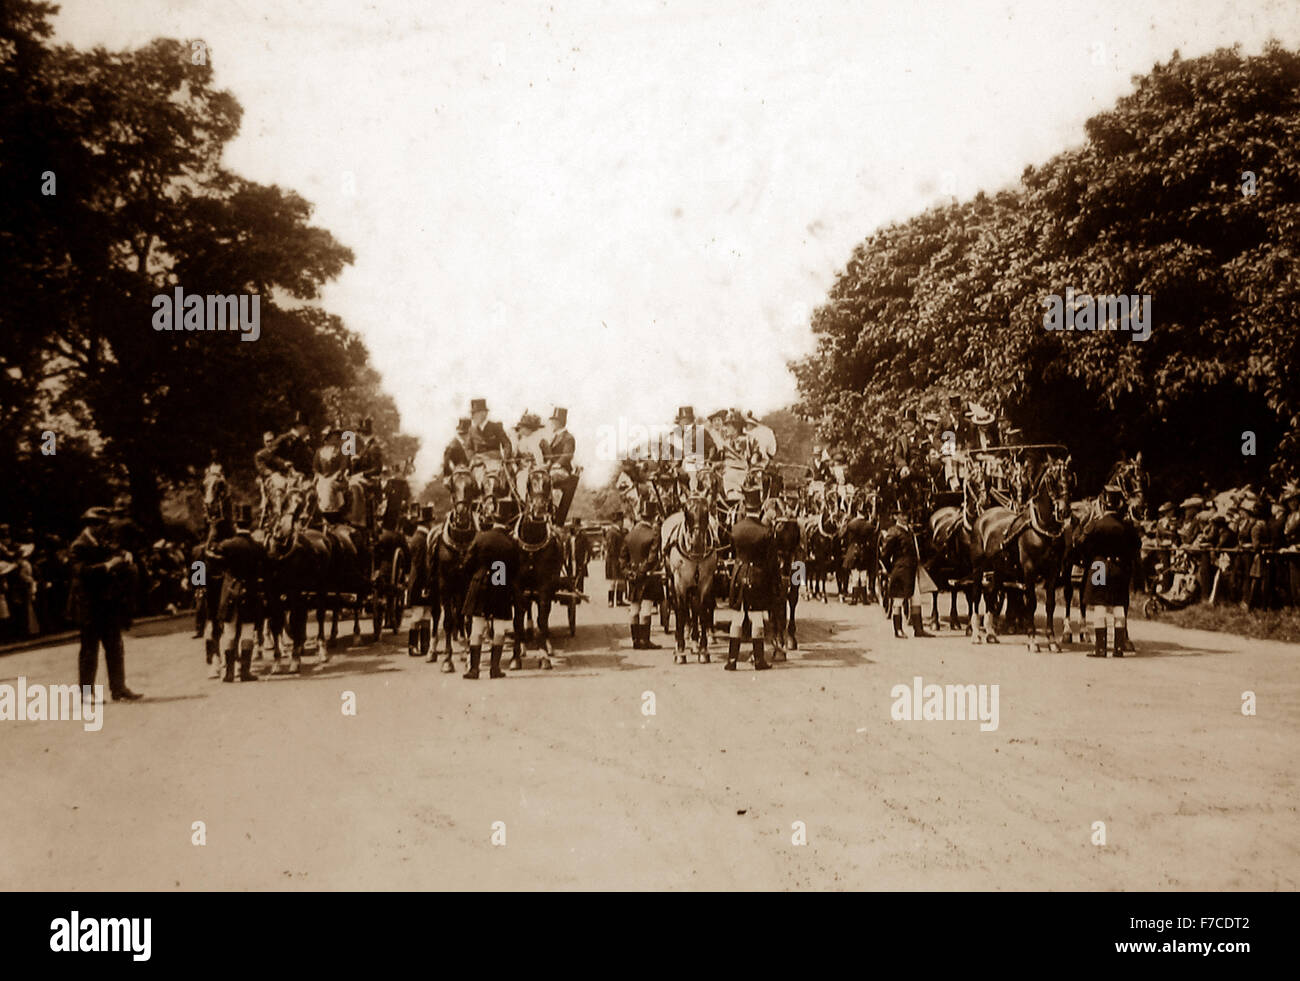 A Coaching Club Meet, Hyde Park, London - Victorian period - Stock Image